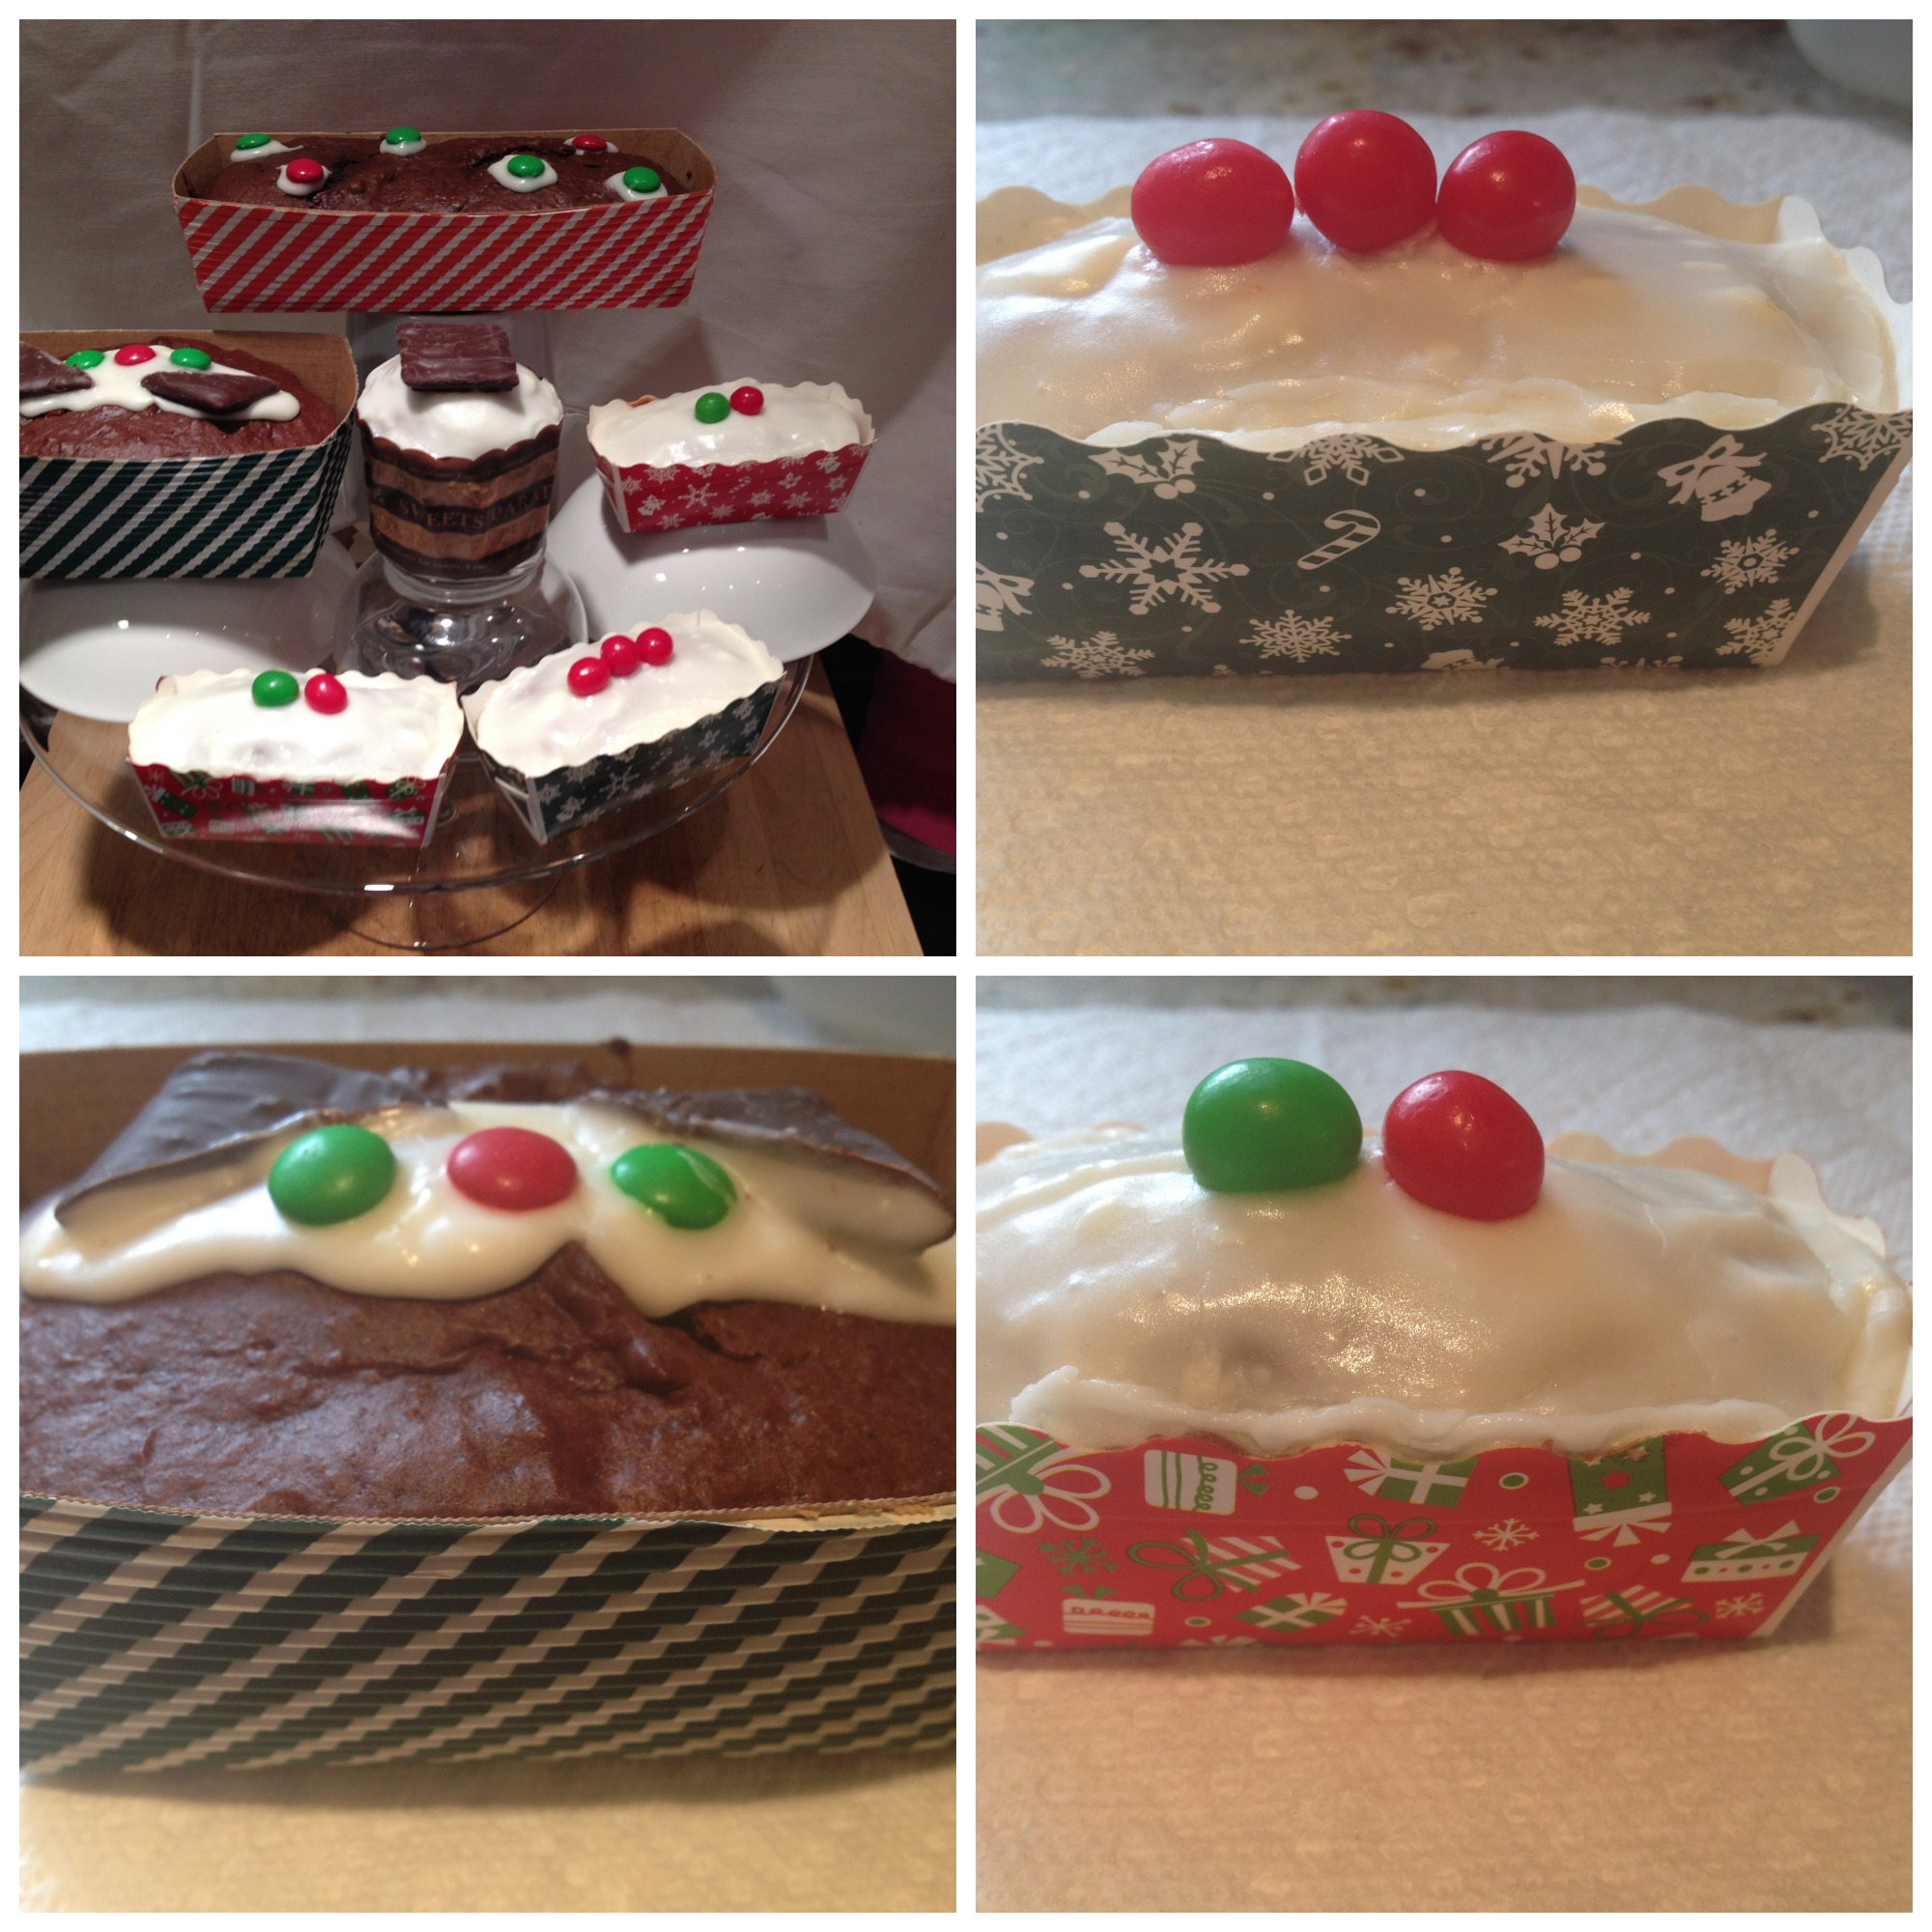 Inspiring Kitchen Christmas baking